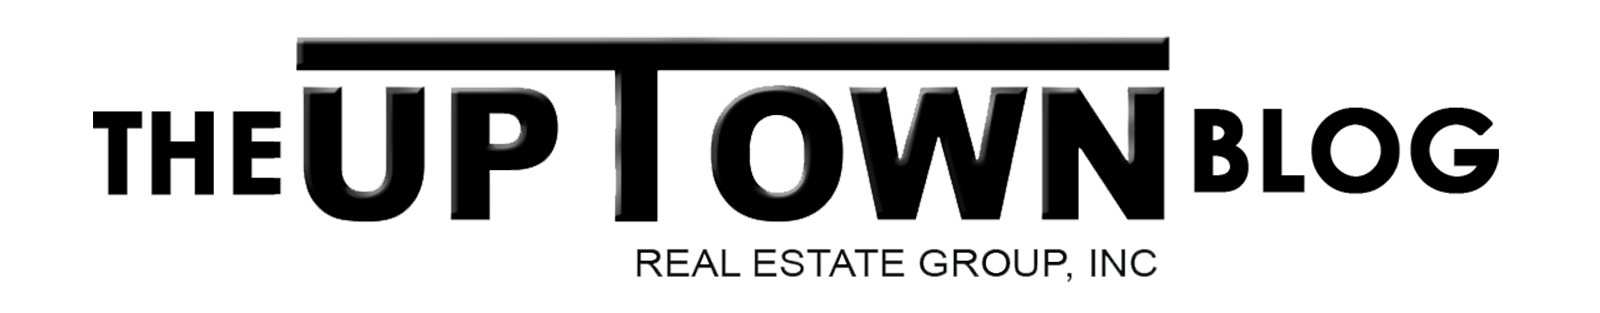 Uptown Real Estate Group